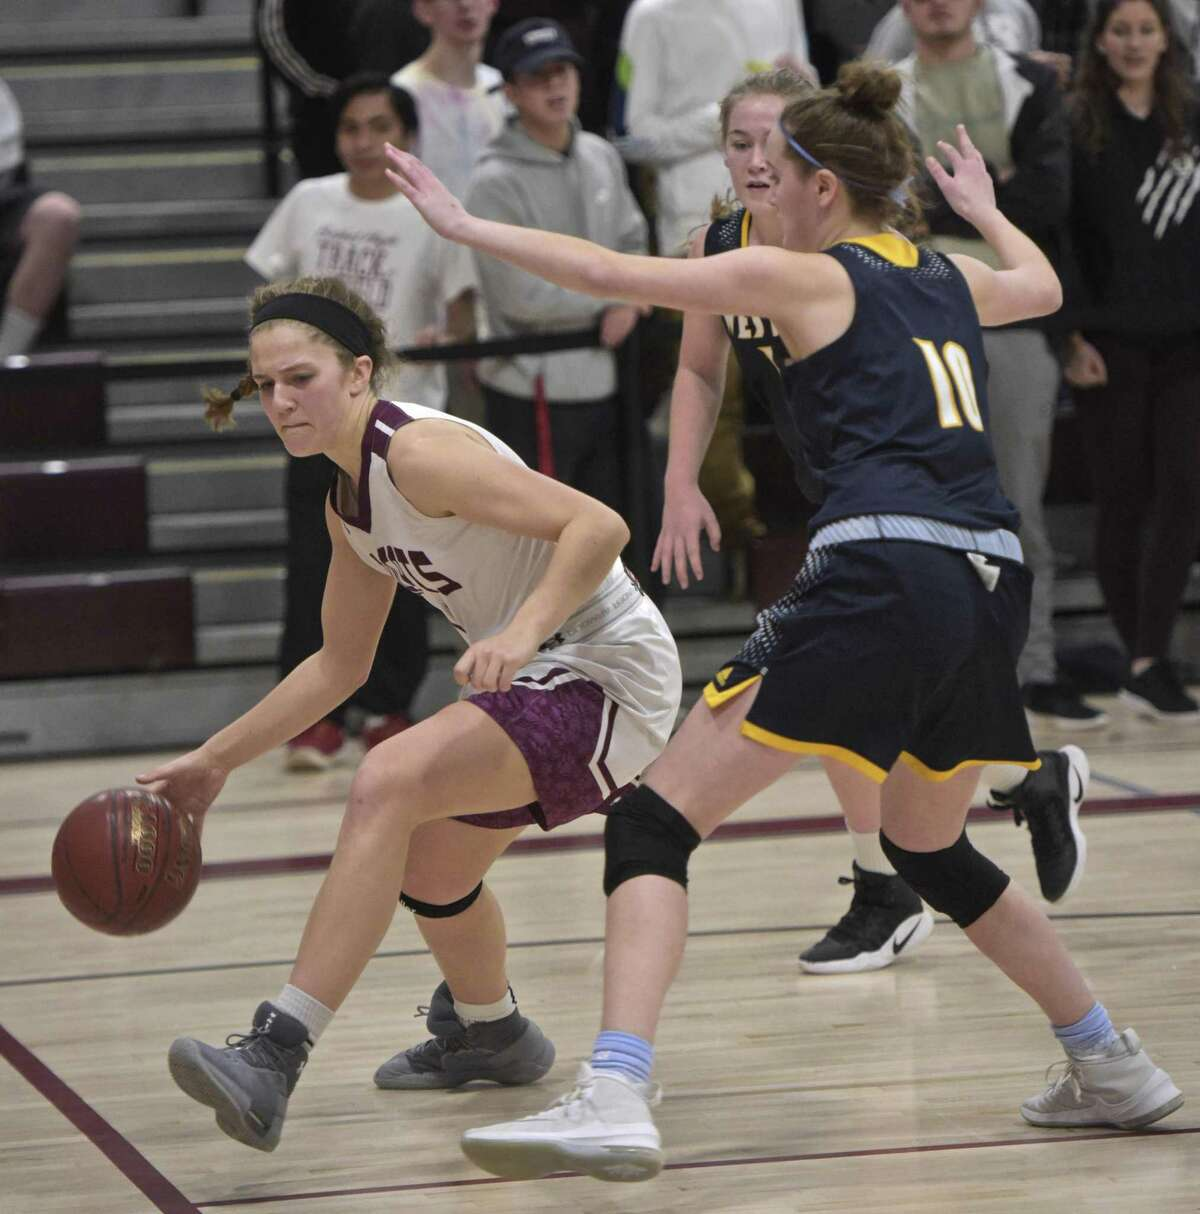 Bethel's Lily Daniels (14) drives around Weston's Georgia Burkard (10) in the girls SWC basketball quarterfinal game between Weston and Bethel high schools. Friday night, February 16, 2018, at Bethel High School, in Bethel, Conn.